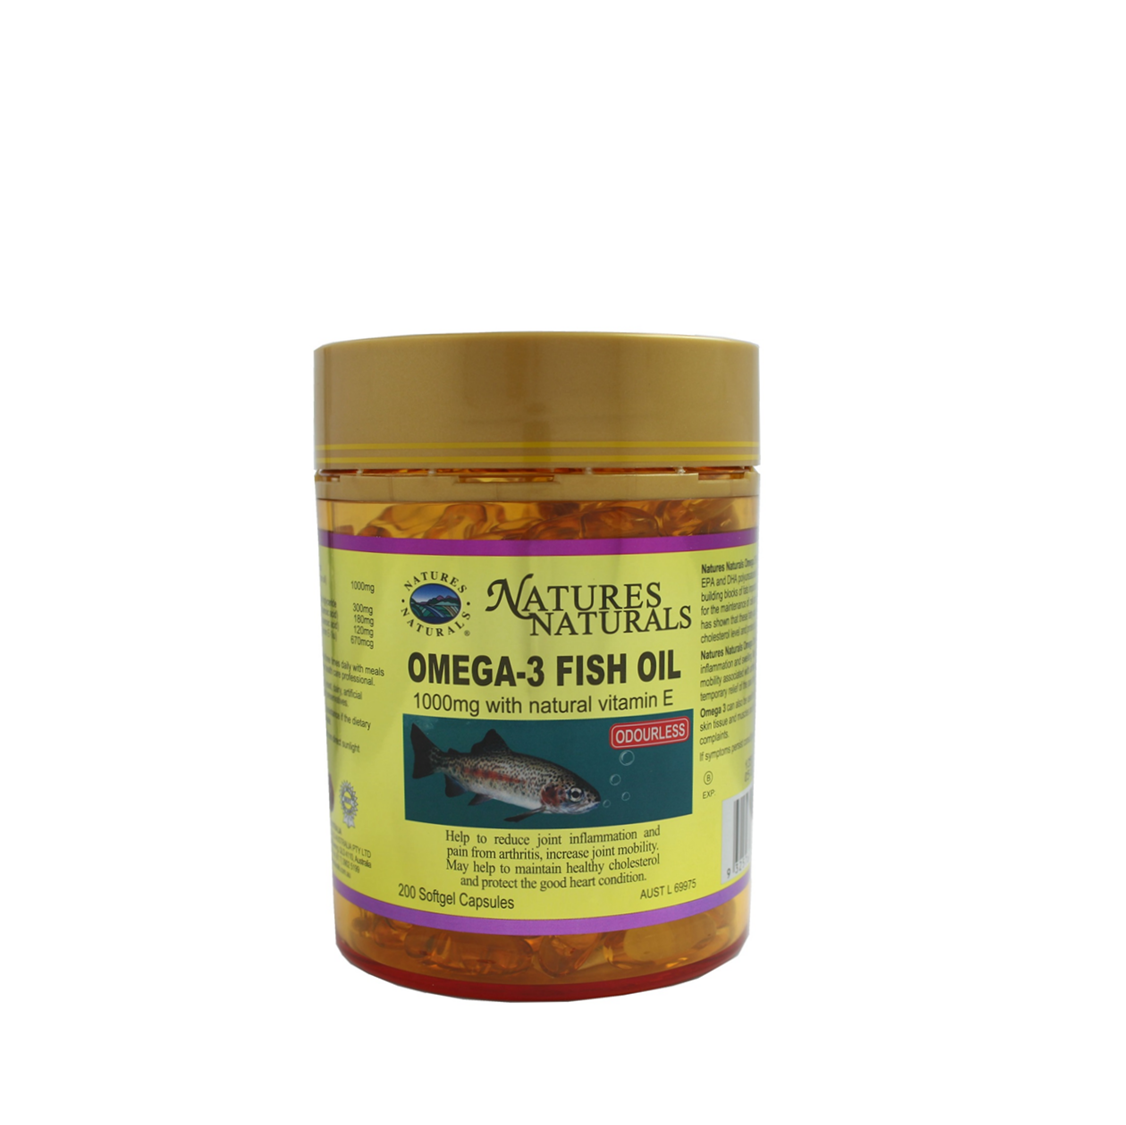 Natures naturals golden odourless omega 3 fish oil 1000mg for Omega 3 fish oil weight loss